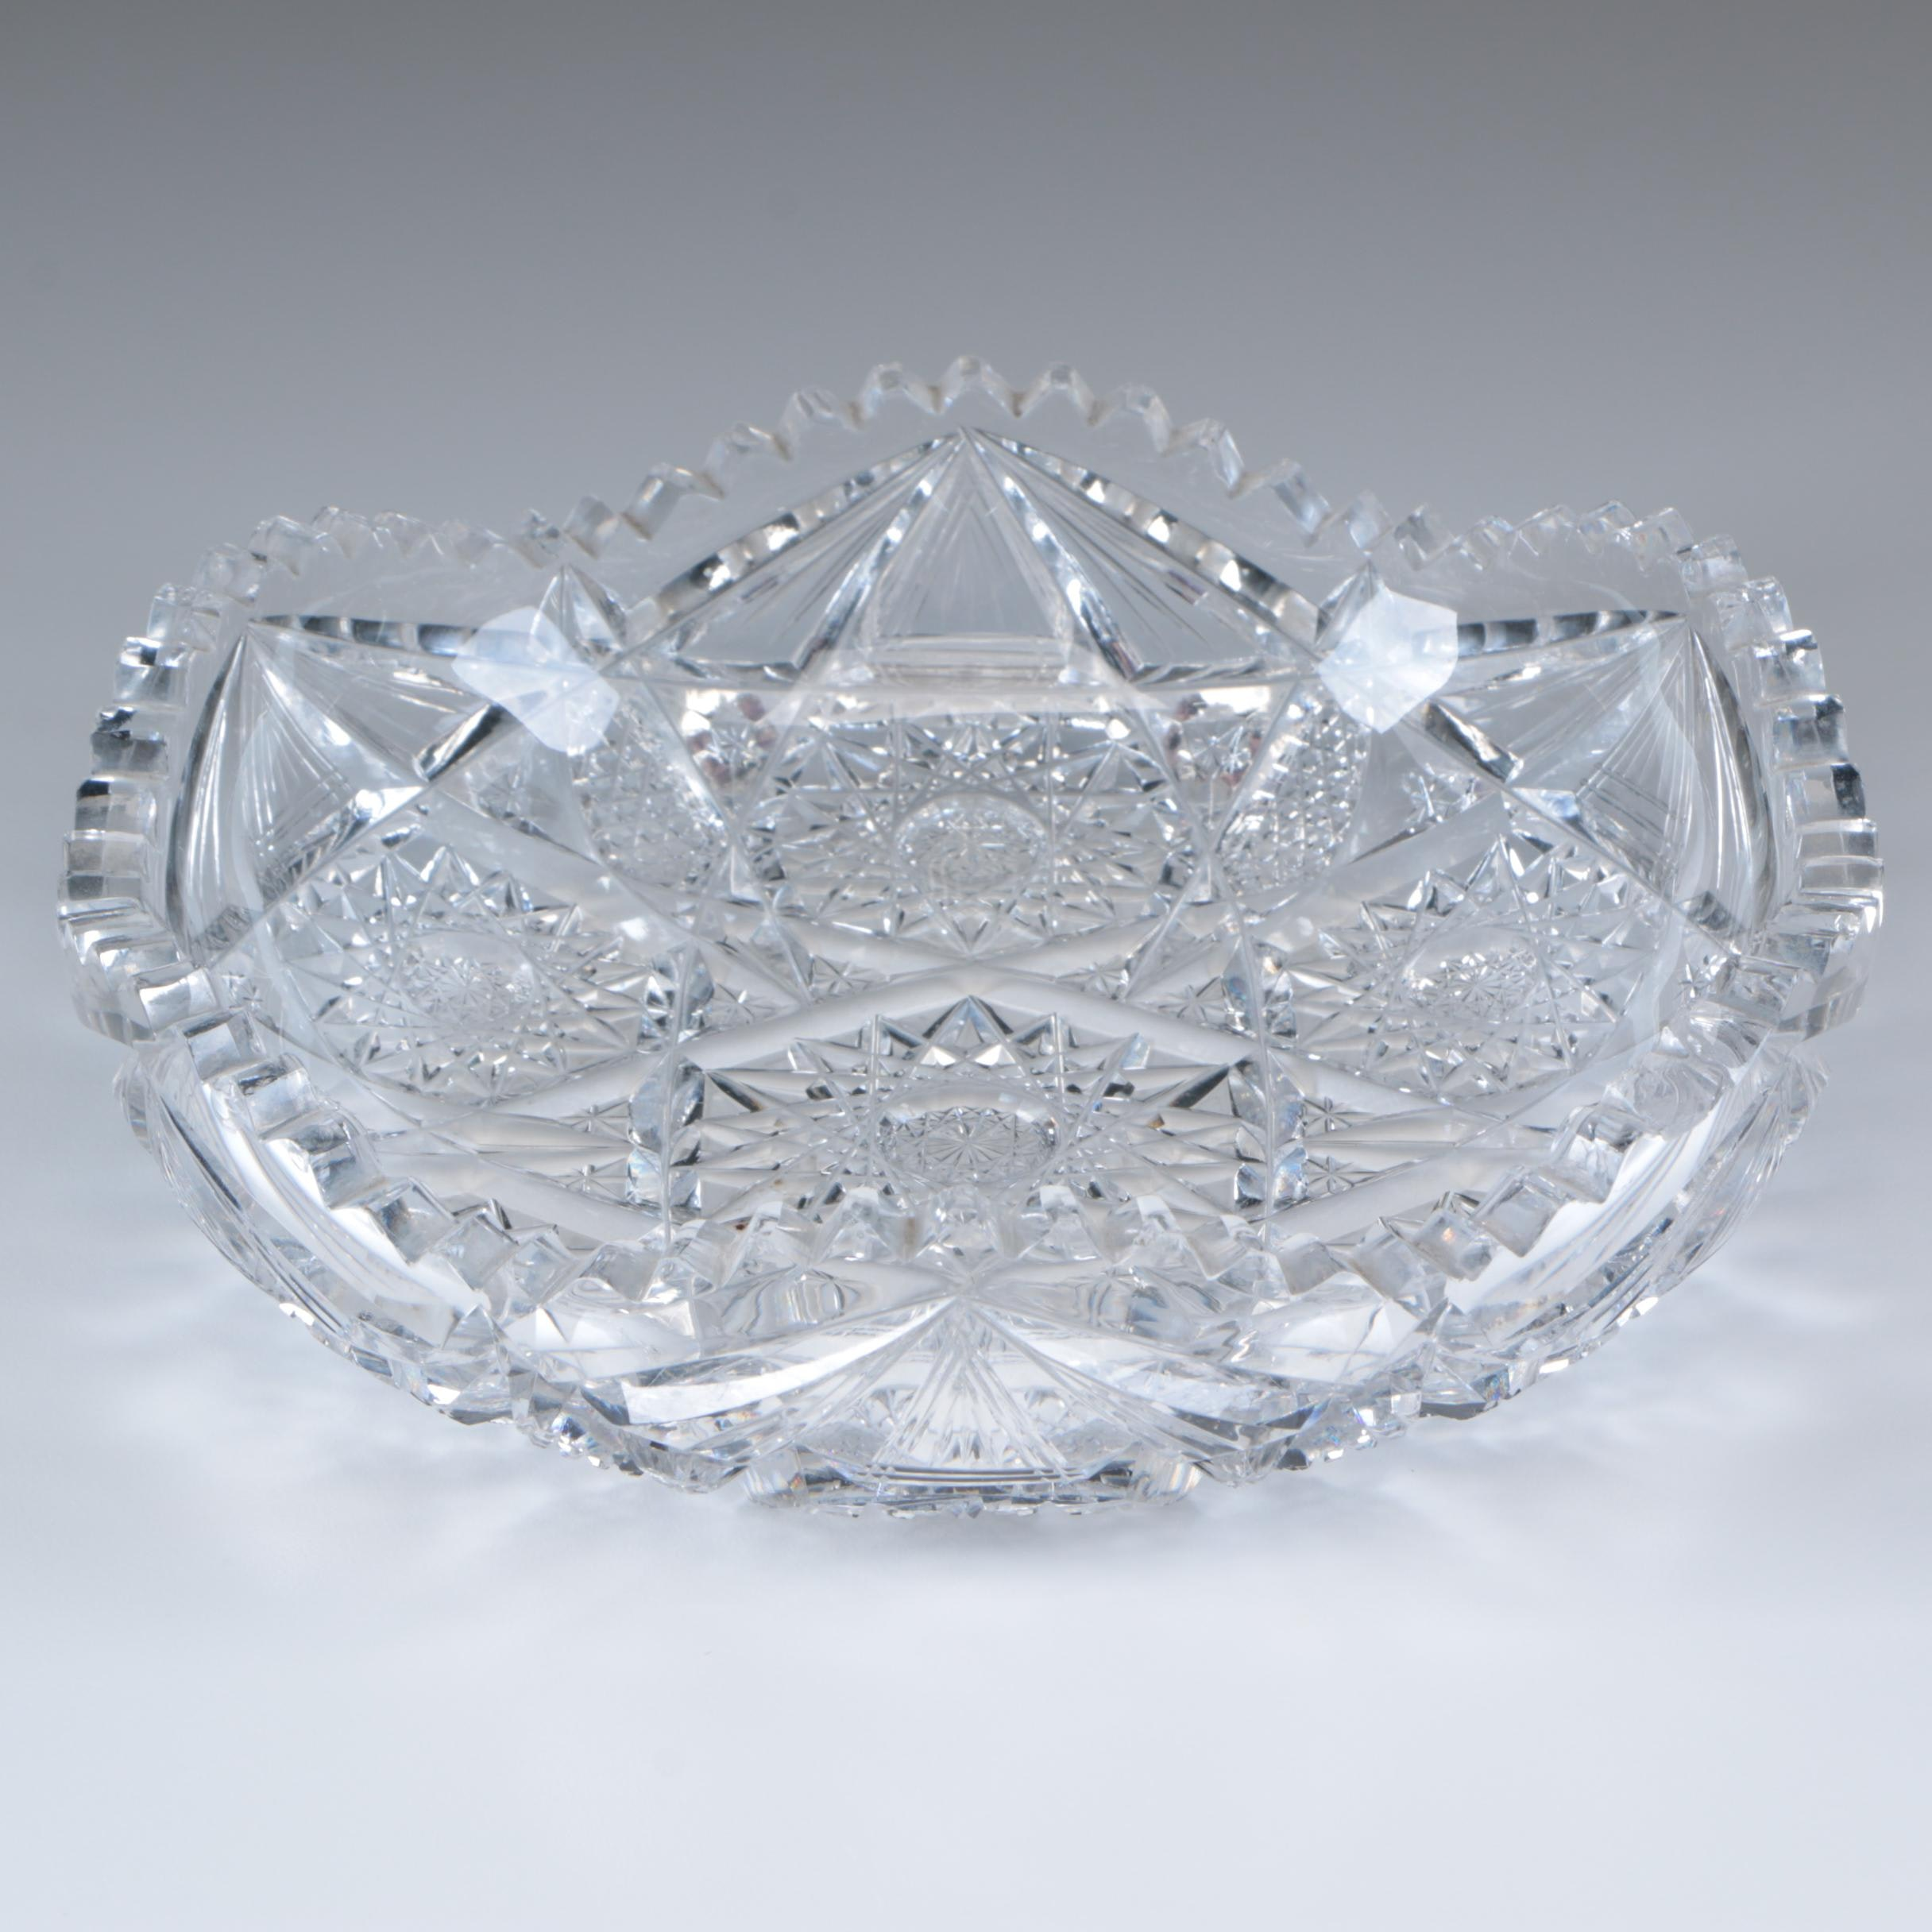 American Brilliant Cut Glass Bowl, Late 19th/Early 20th Century